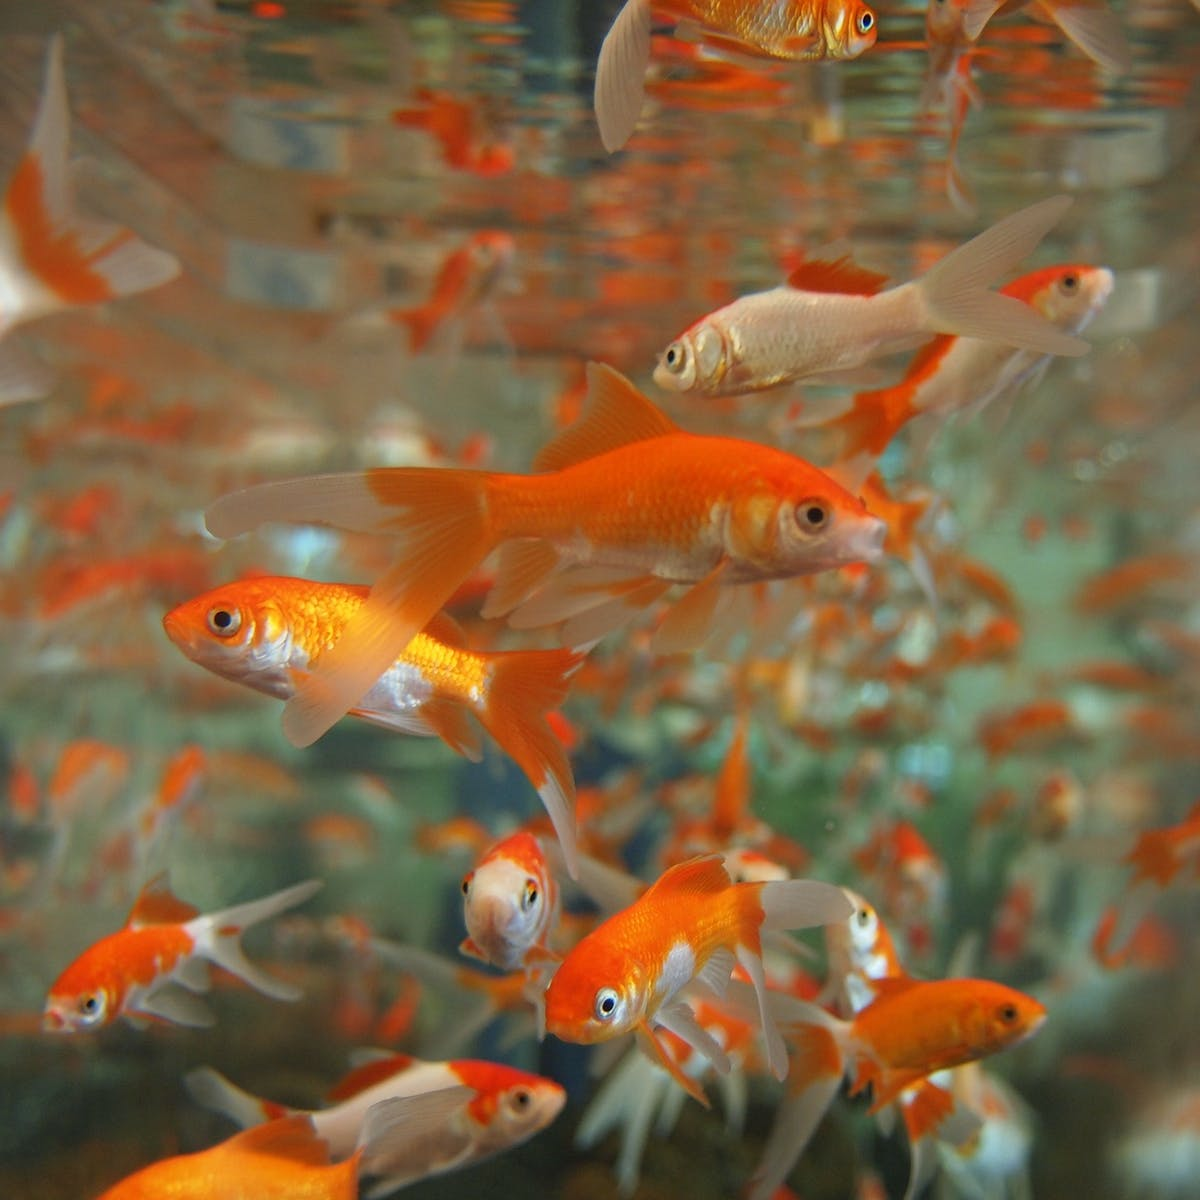 Why You Should Never Put A Goldfish In A Park Pond Or Down The Toilet